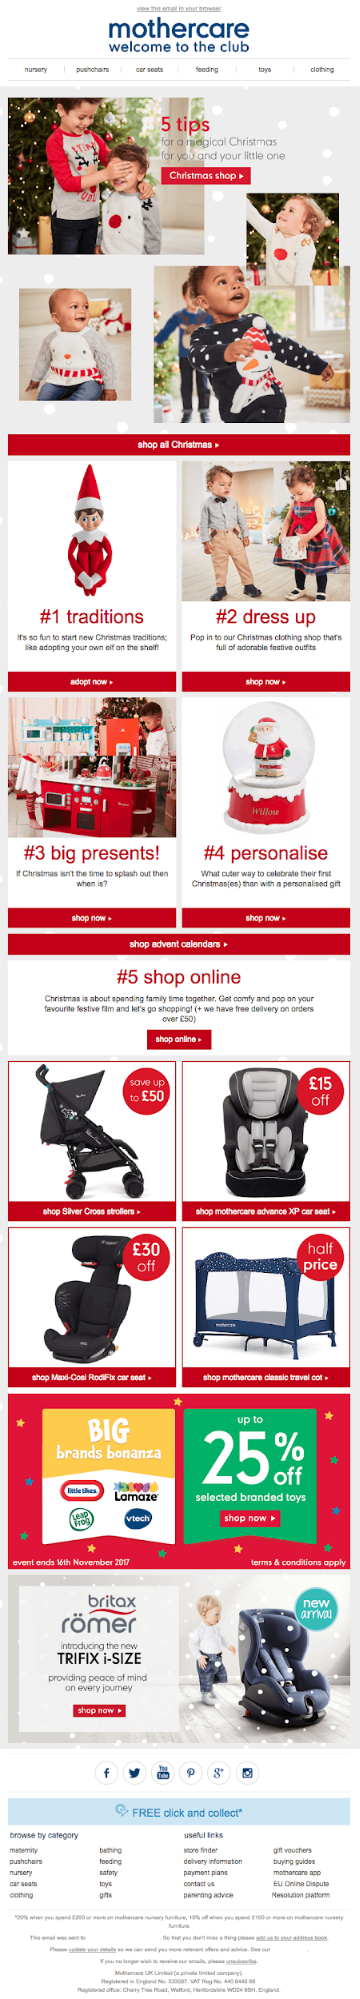 MotherCare holdiay email marketing